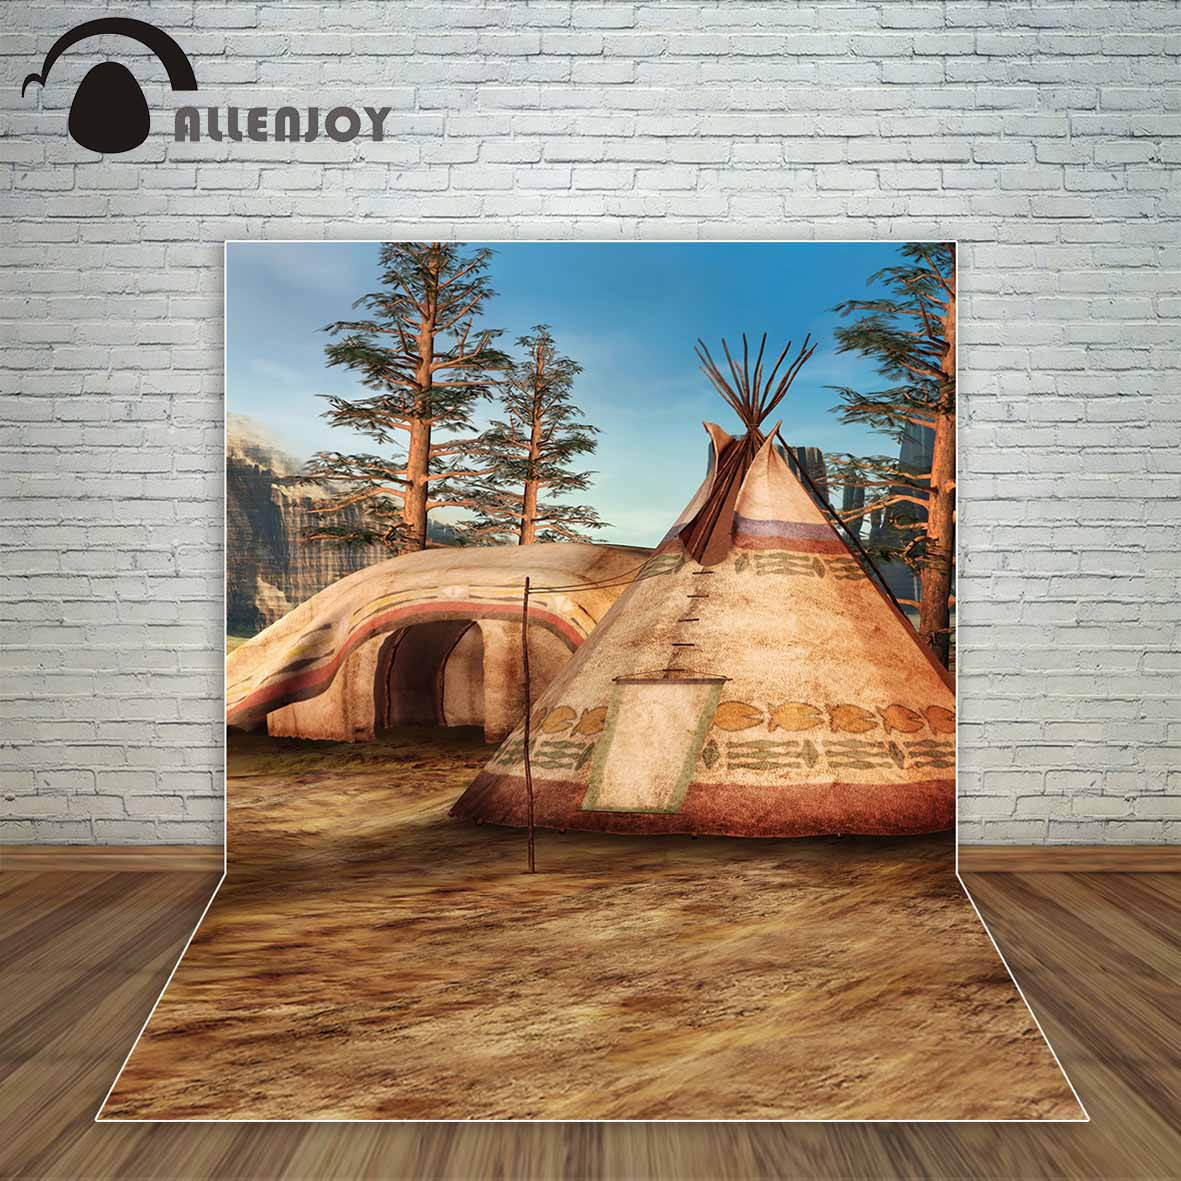 Allenjoy Fantasy teepee tipi Native American camp in the mountains with trees backdrop fond studio photo background photography the woman in the photo